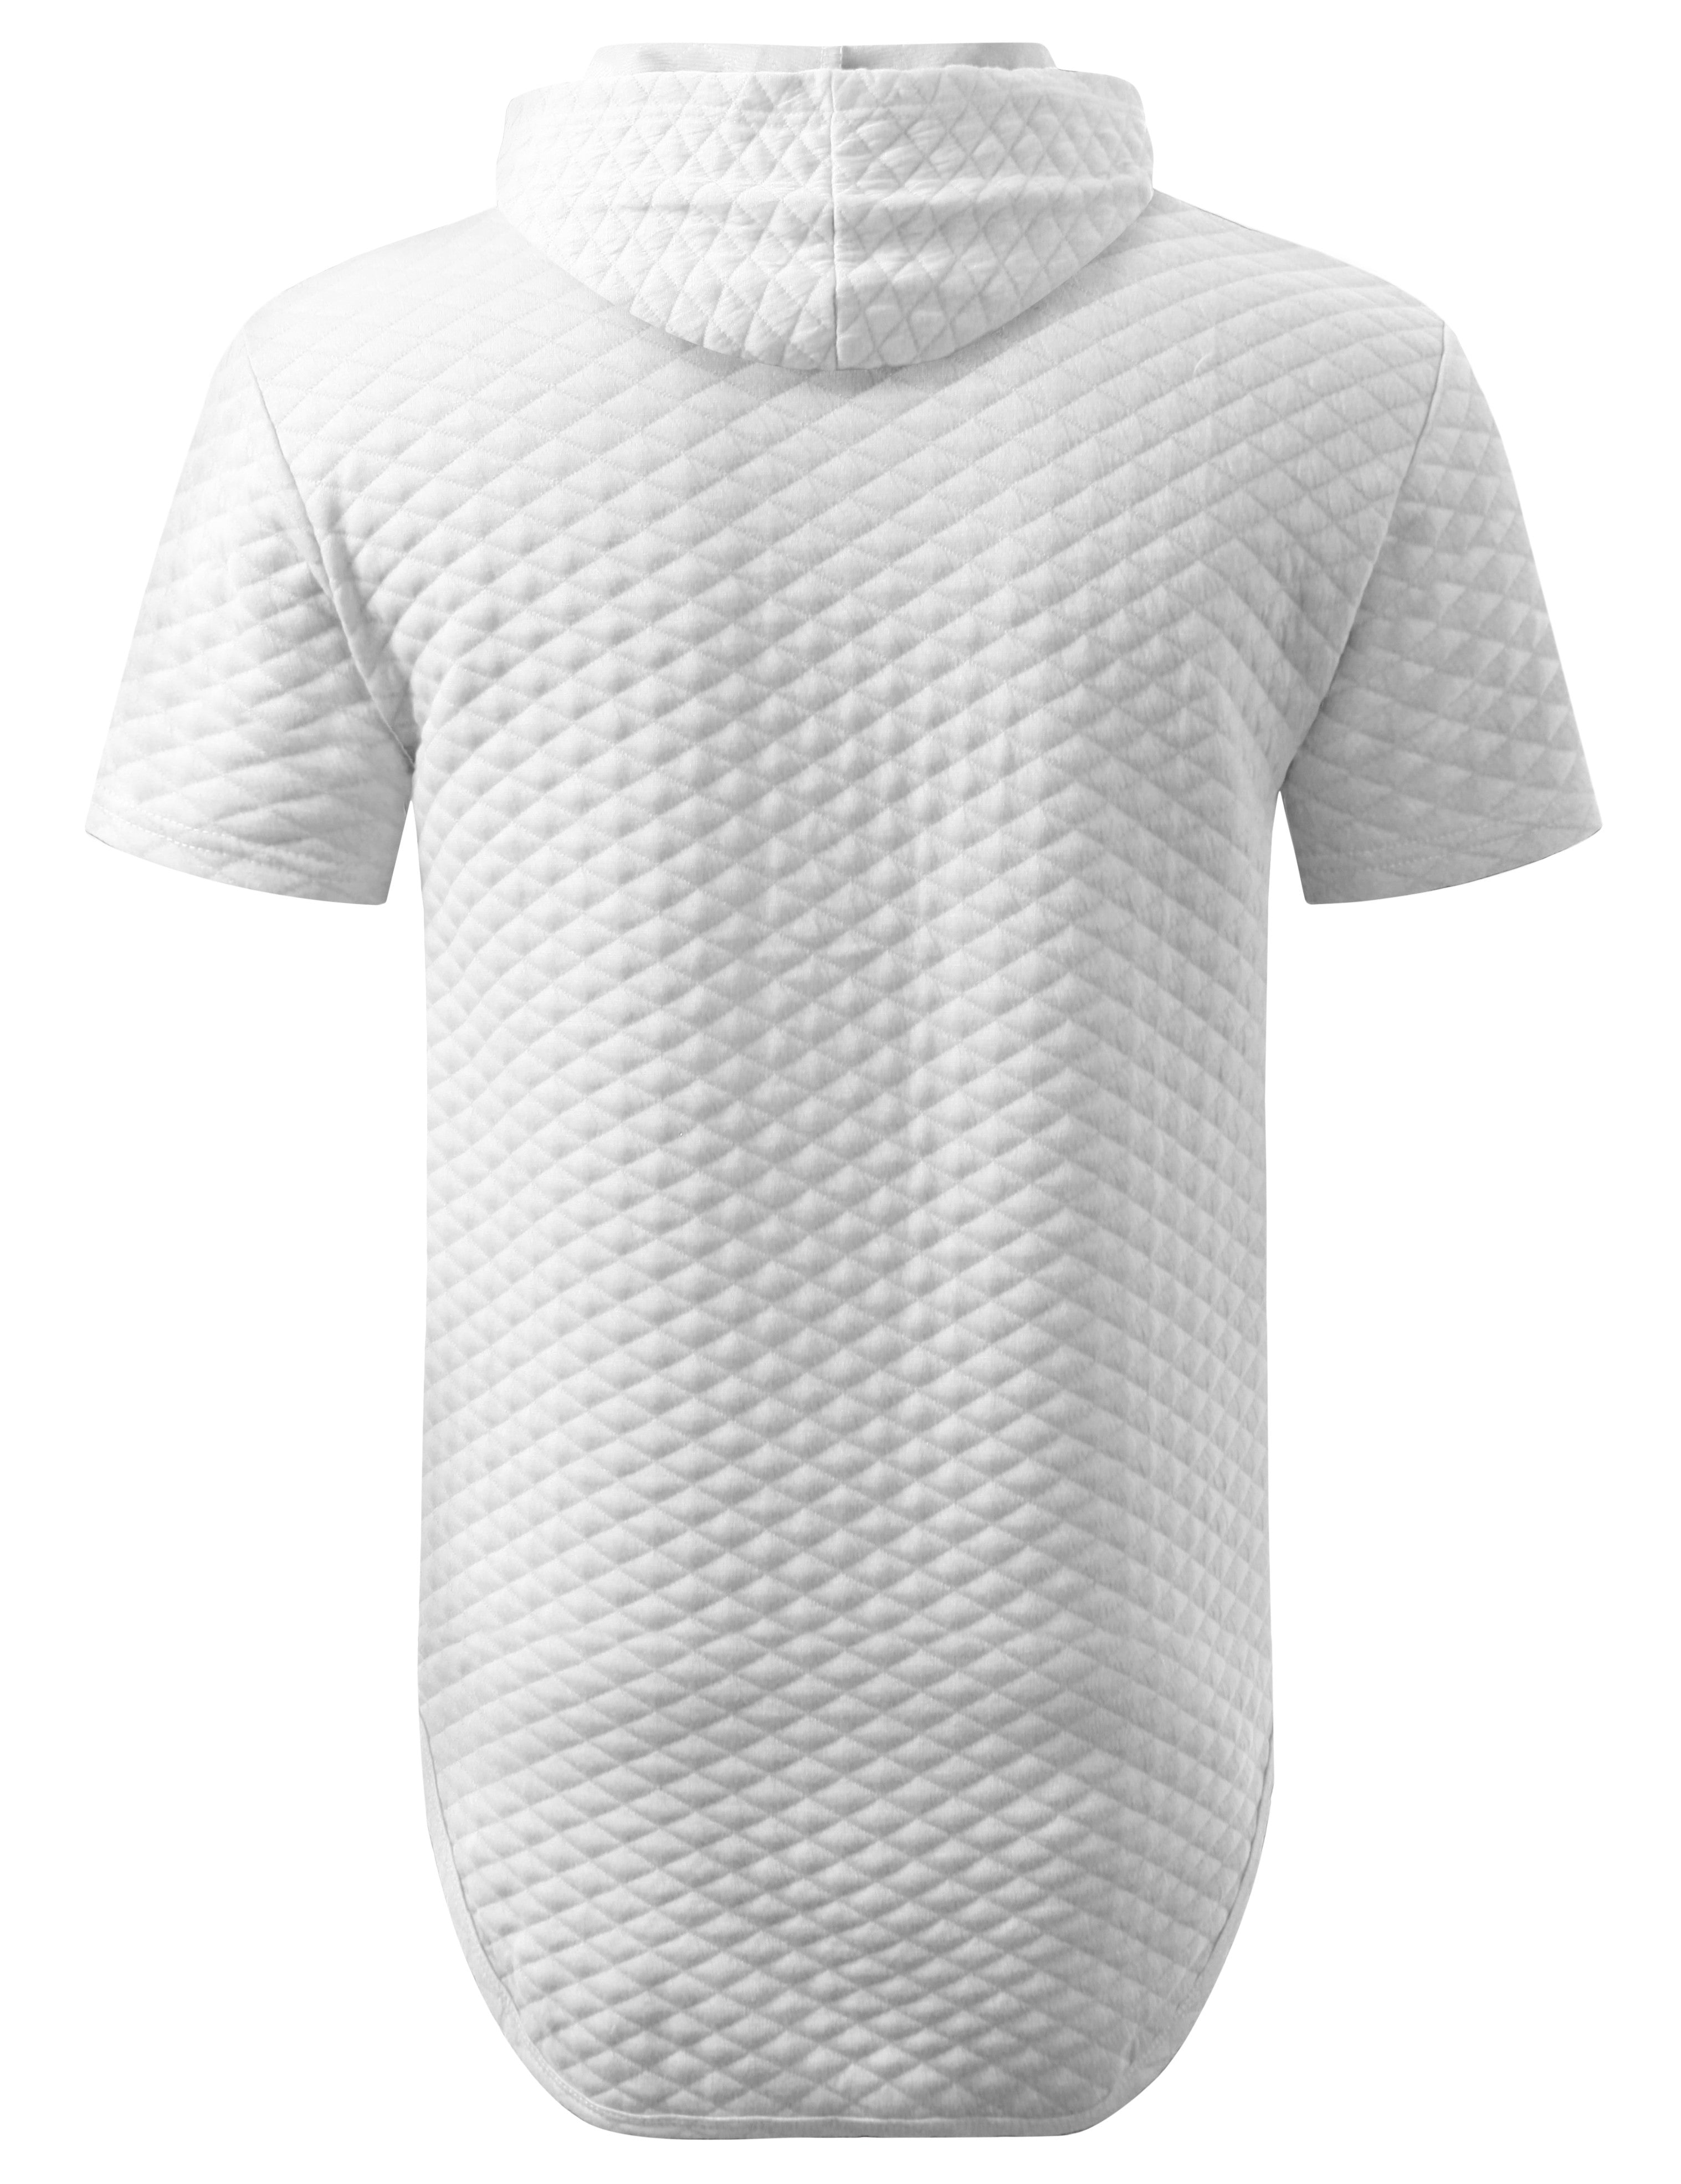 WHITE Quilted Short Sleeve Hoodie Shirt - URBANCREWS